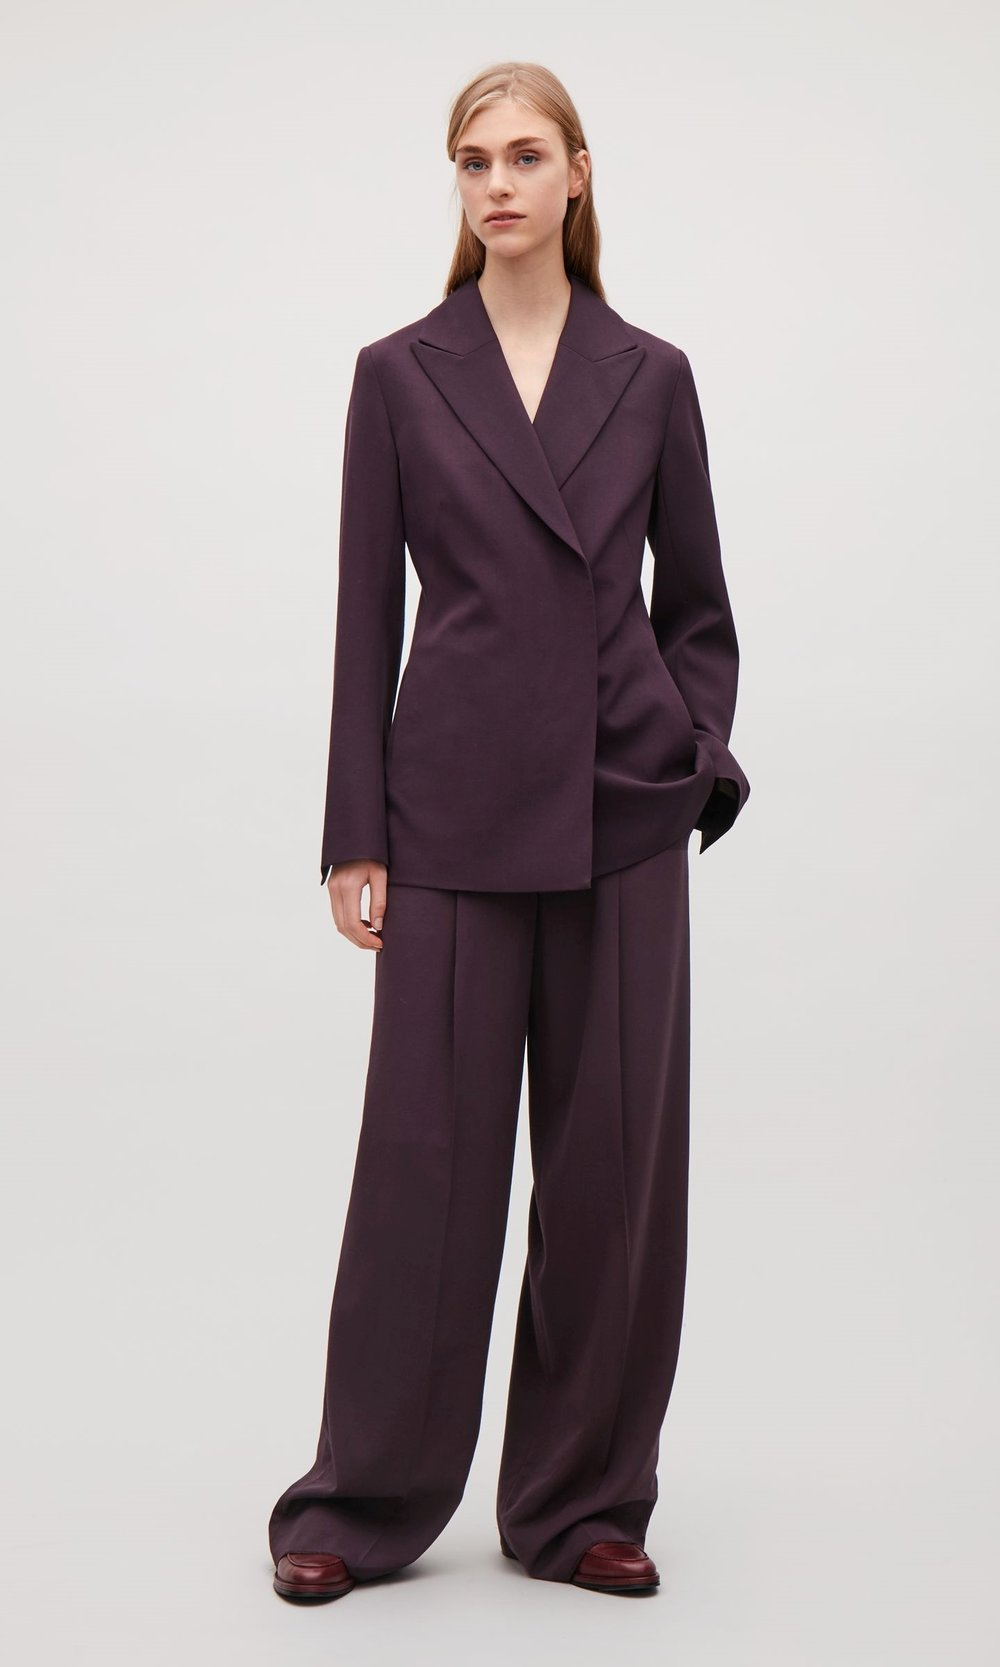 God I LOVE this suit, its feels and looks way more expensive than it is. Its COS  Blazer  is £150  trousers  are £89 both are stunning as one pieces and actually with a bit of tailoring on the trouser hem, this will suit most body types. The colour is hugely versatile too, and will marry into most wardrobes as its not a glaring shade.